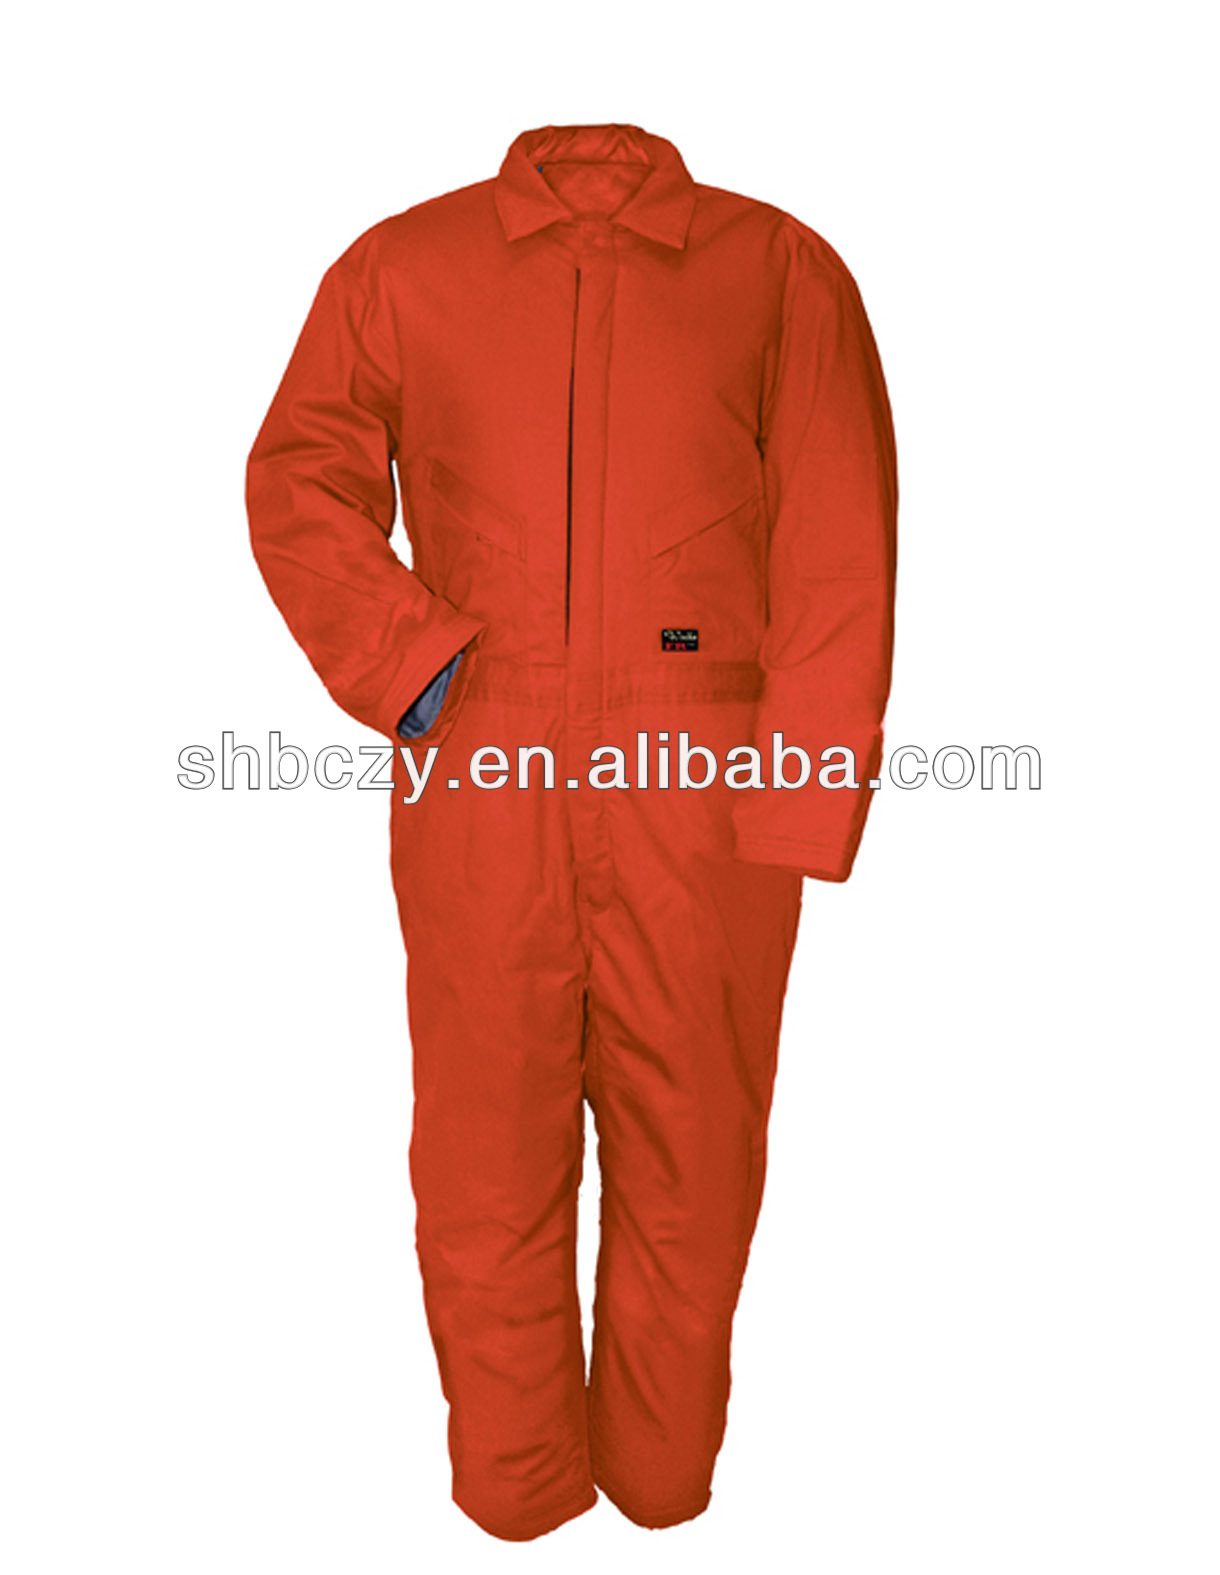 Coveralls with reflective tape